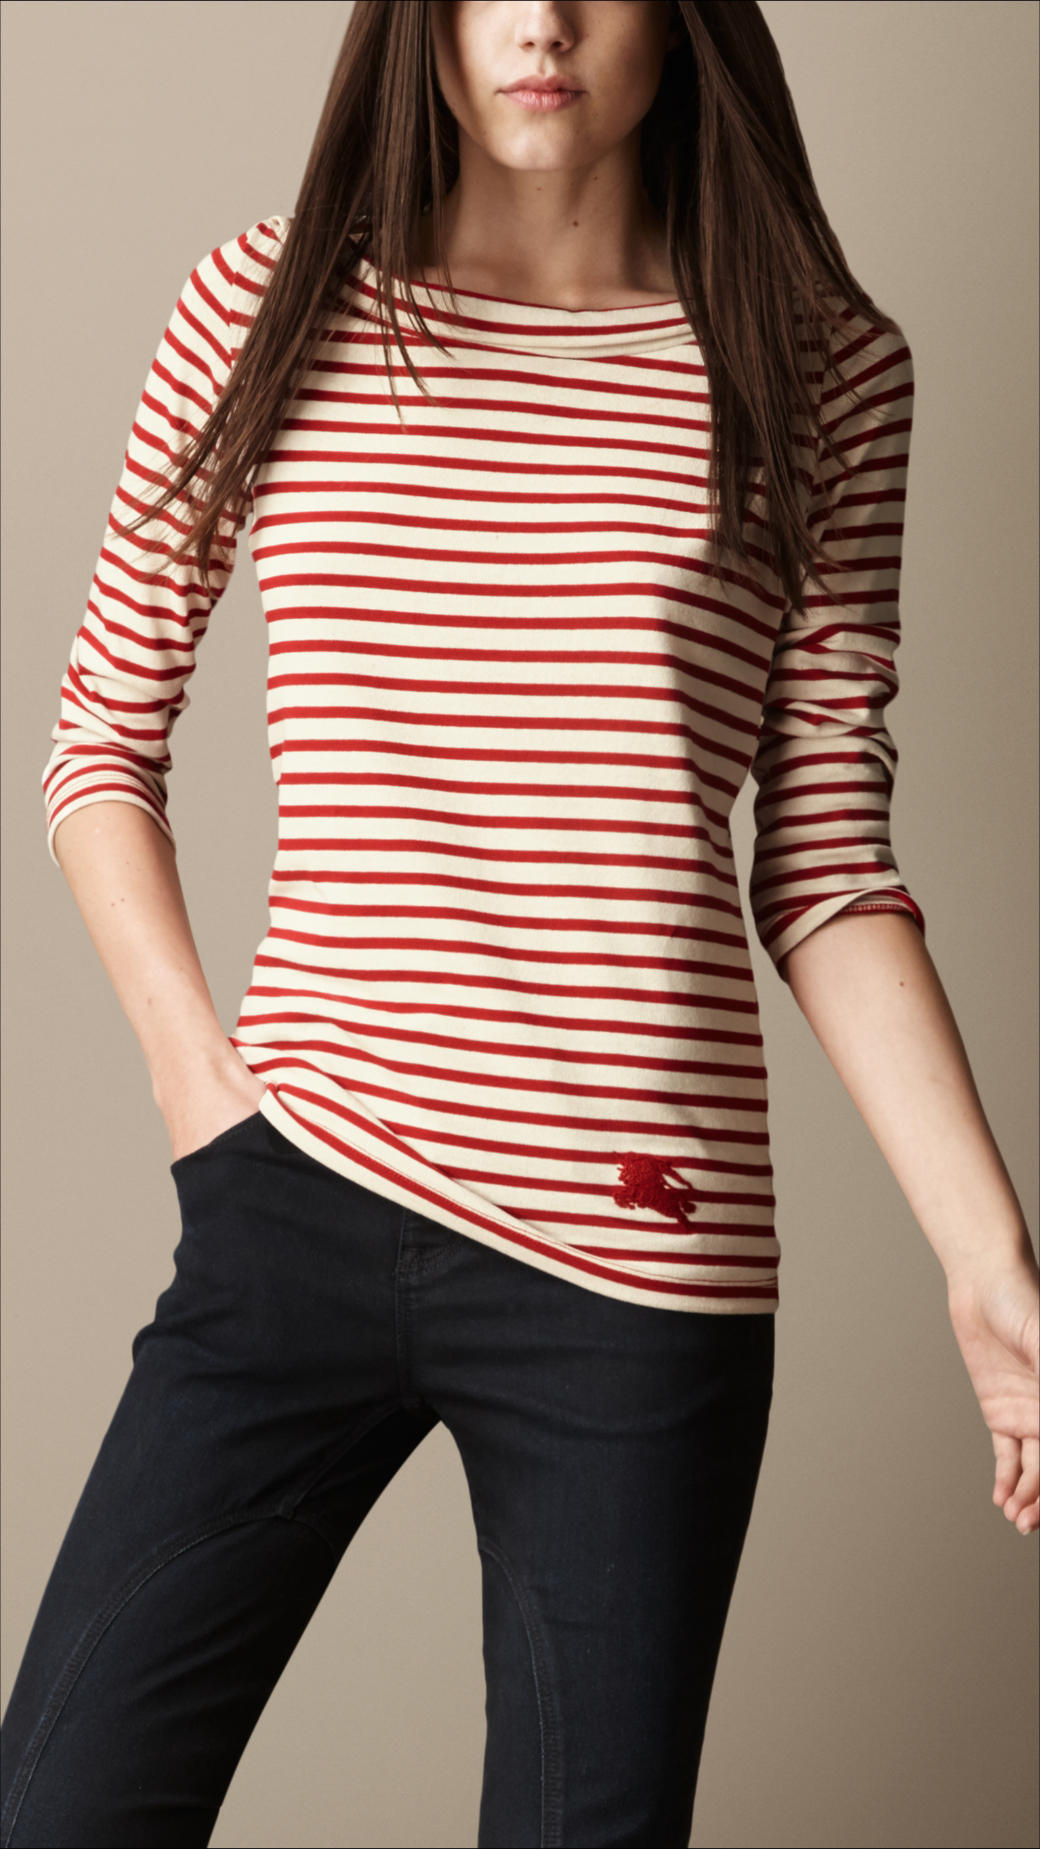 The Robo Robot Breton Stripe Top is a relaxed fit style in a red Breton stripe design with a fun robot embroidered patch on the front. The Robo Robot Breton Stripe Top is a relaxed fit style in a red Breton stripe design with a fun robot embroidered patch on the front. +44 (0) ;.